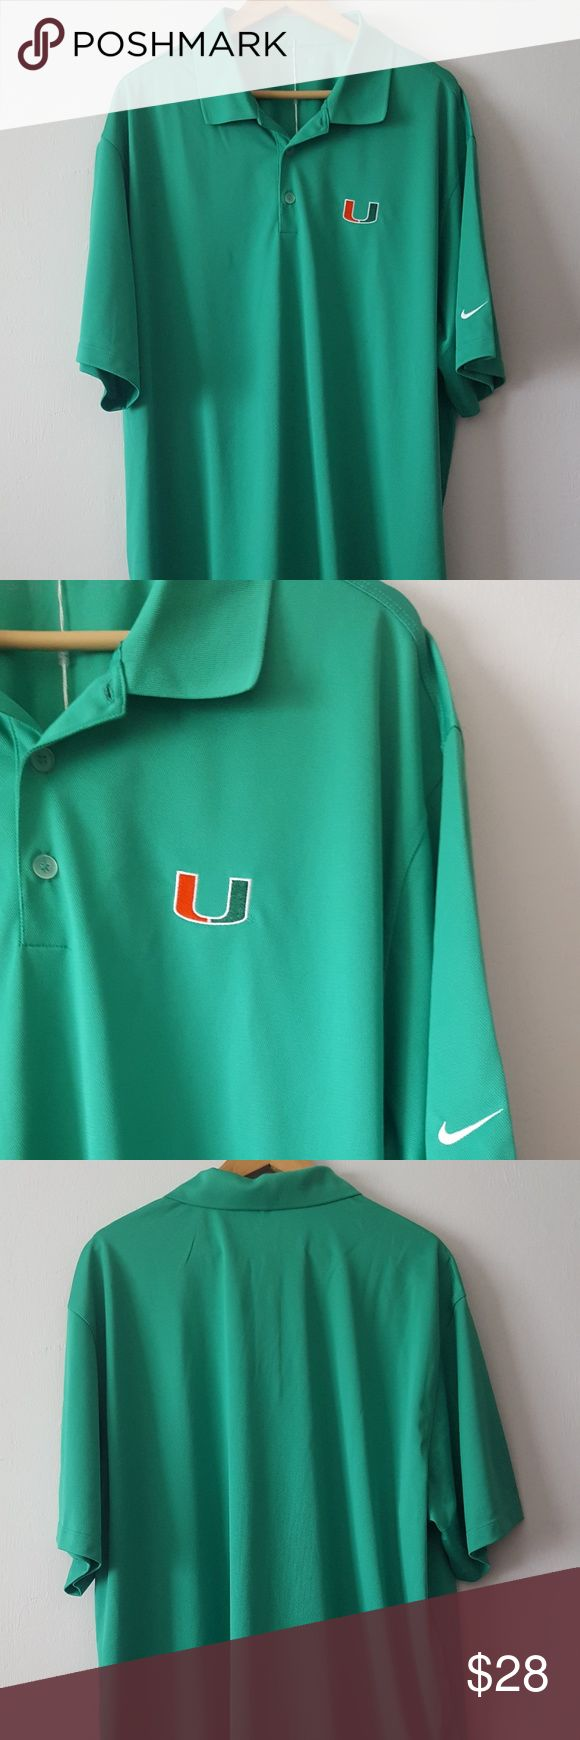 "NWT NIKE GOLF UNIVERSITY OF MIAMI HURRICANES POLO NWT Nike Golf polo for The University of Miami Hurricanes - Size XXL  Nike Dri-fit with UV Protective & stays cool when it heats up!  Green with school ""U"" logo patch on chest in darker green & orange White swoosh embroidery on sleeve 100% polyester  Approx. measurements - 11 inch sleeves, 22 inch shoulder width, 27 in. pit to pit, 32 inches in length Nike Shirts Polos"